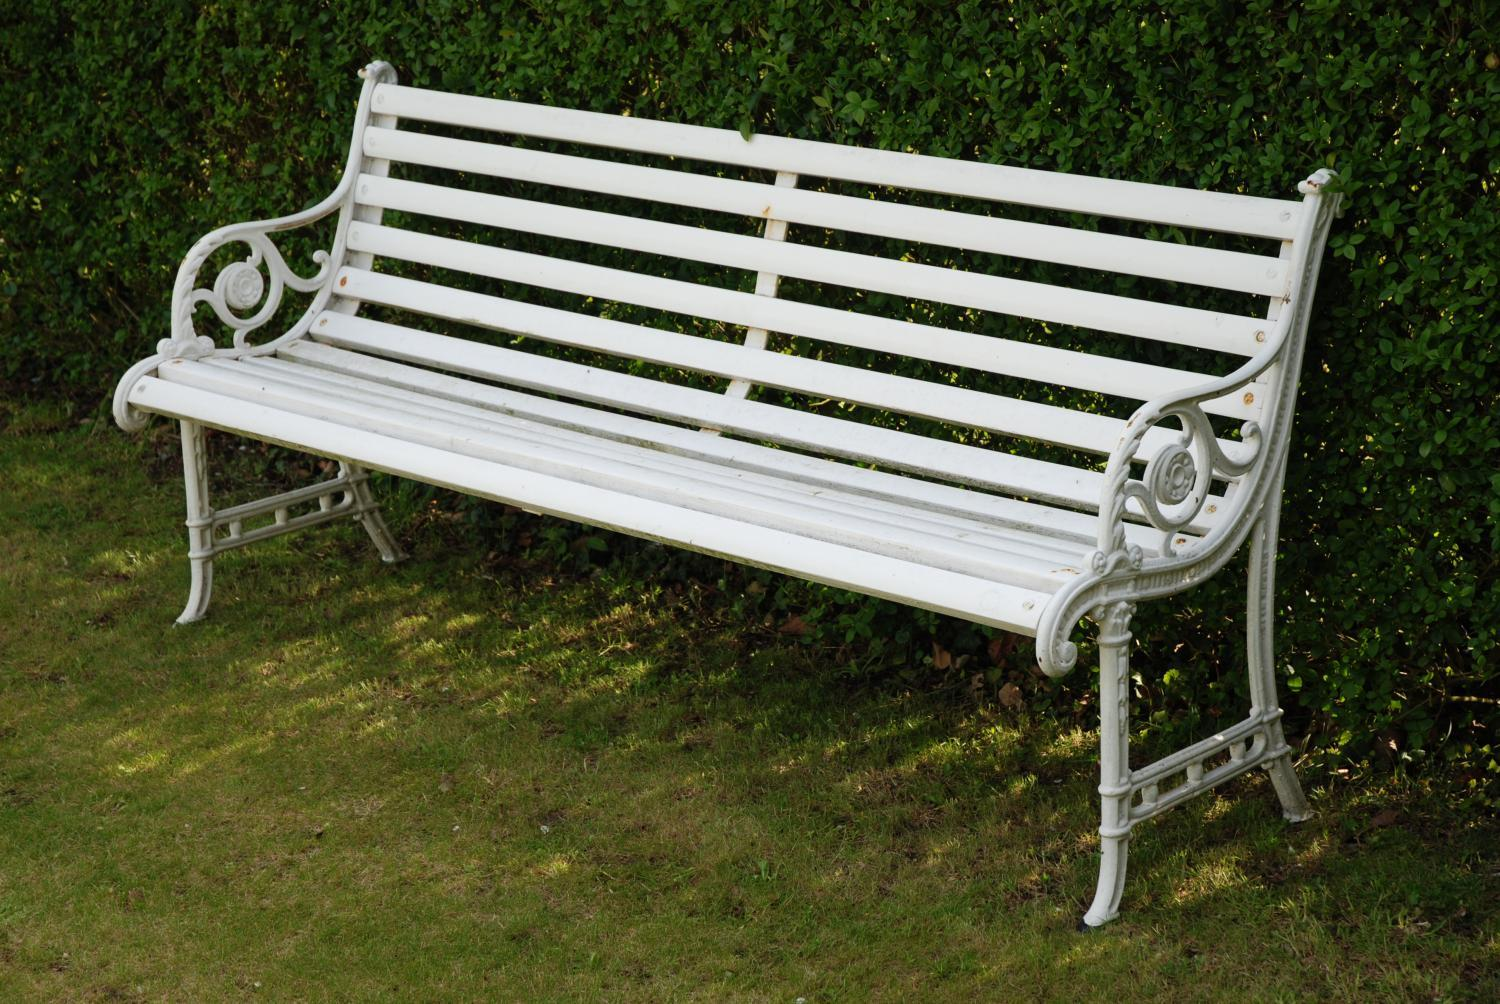 Edwardian cast iron garden bench in Garden FurnitureUrns